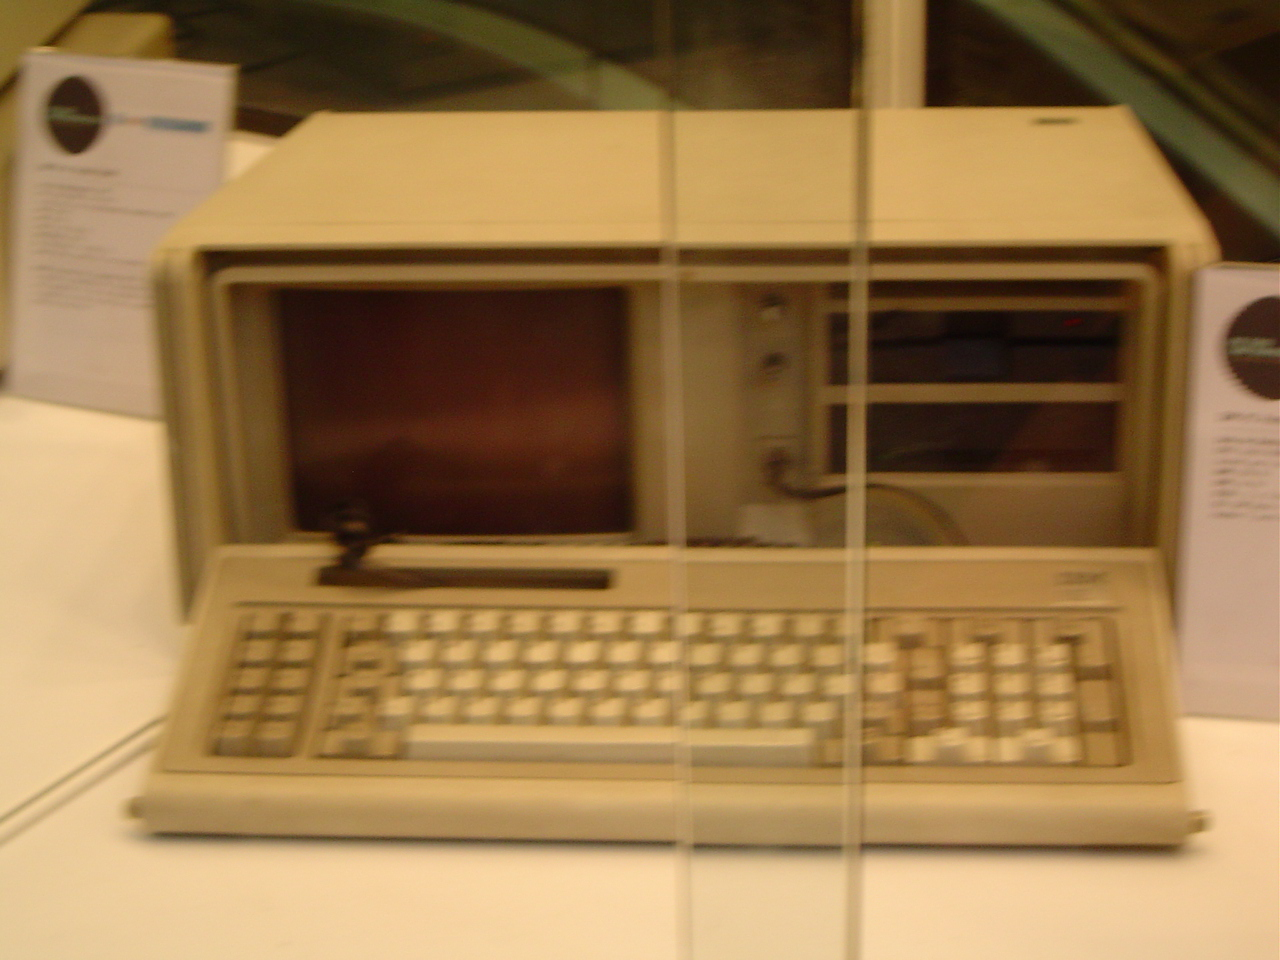 File:Old computer 5.jpg - Wikimedia Commons